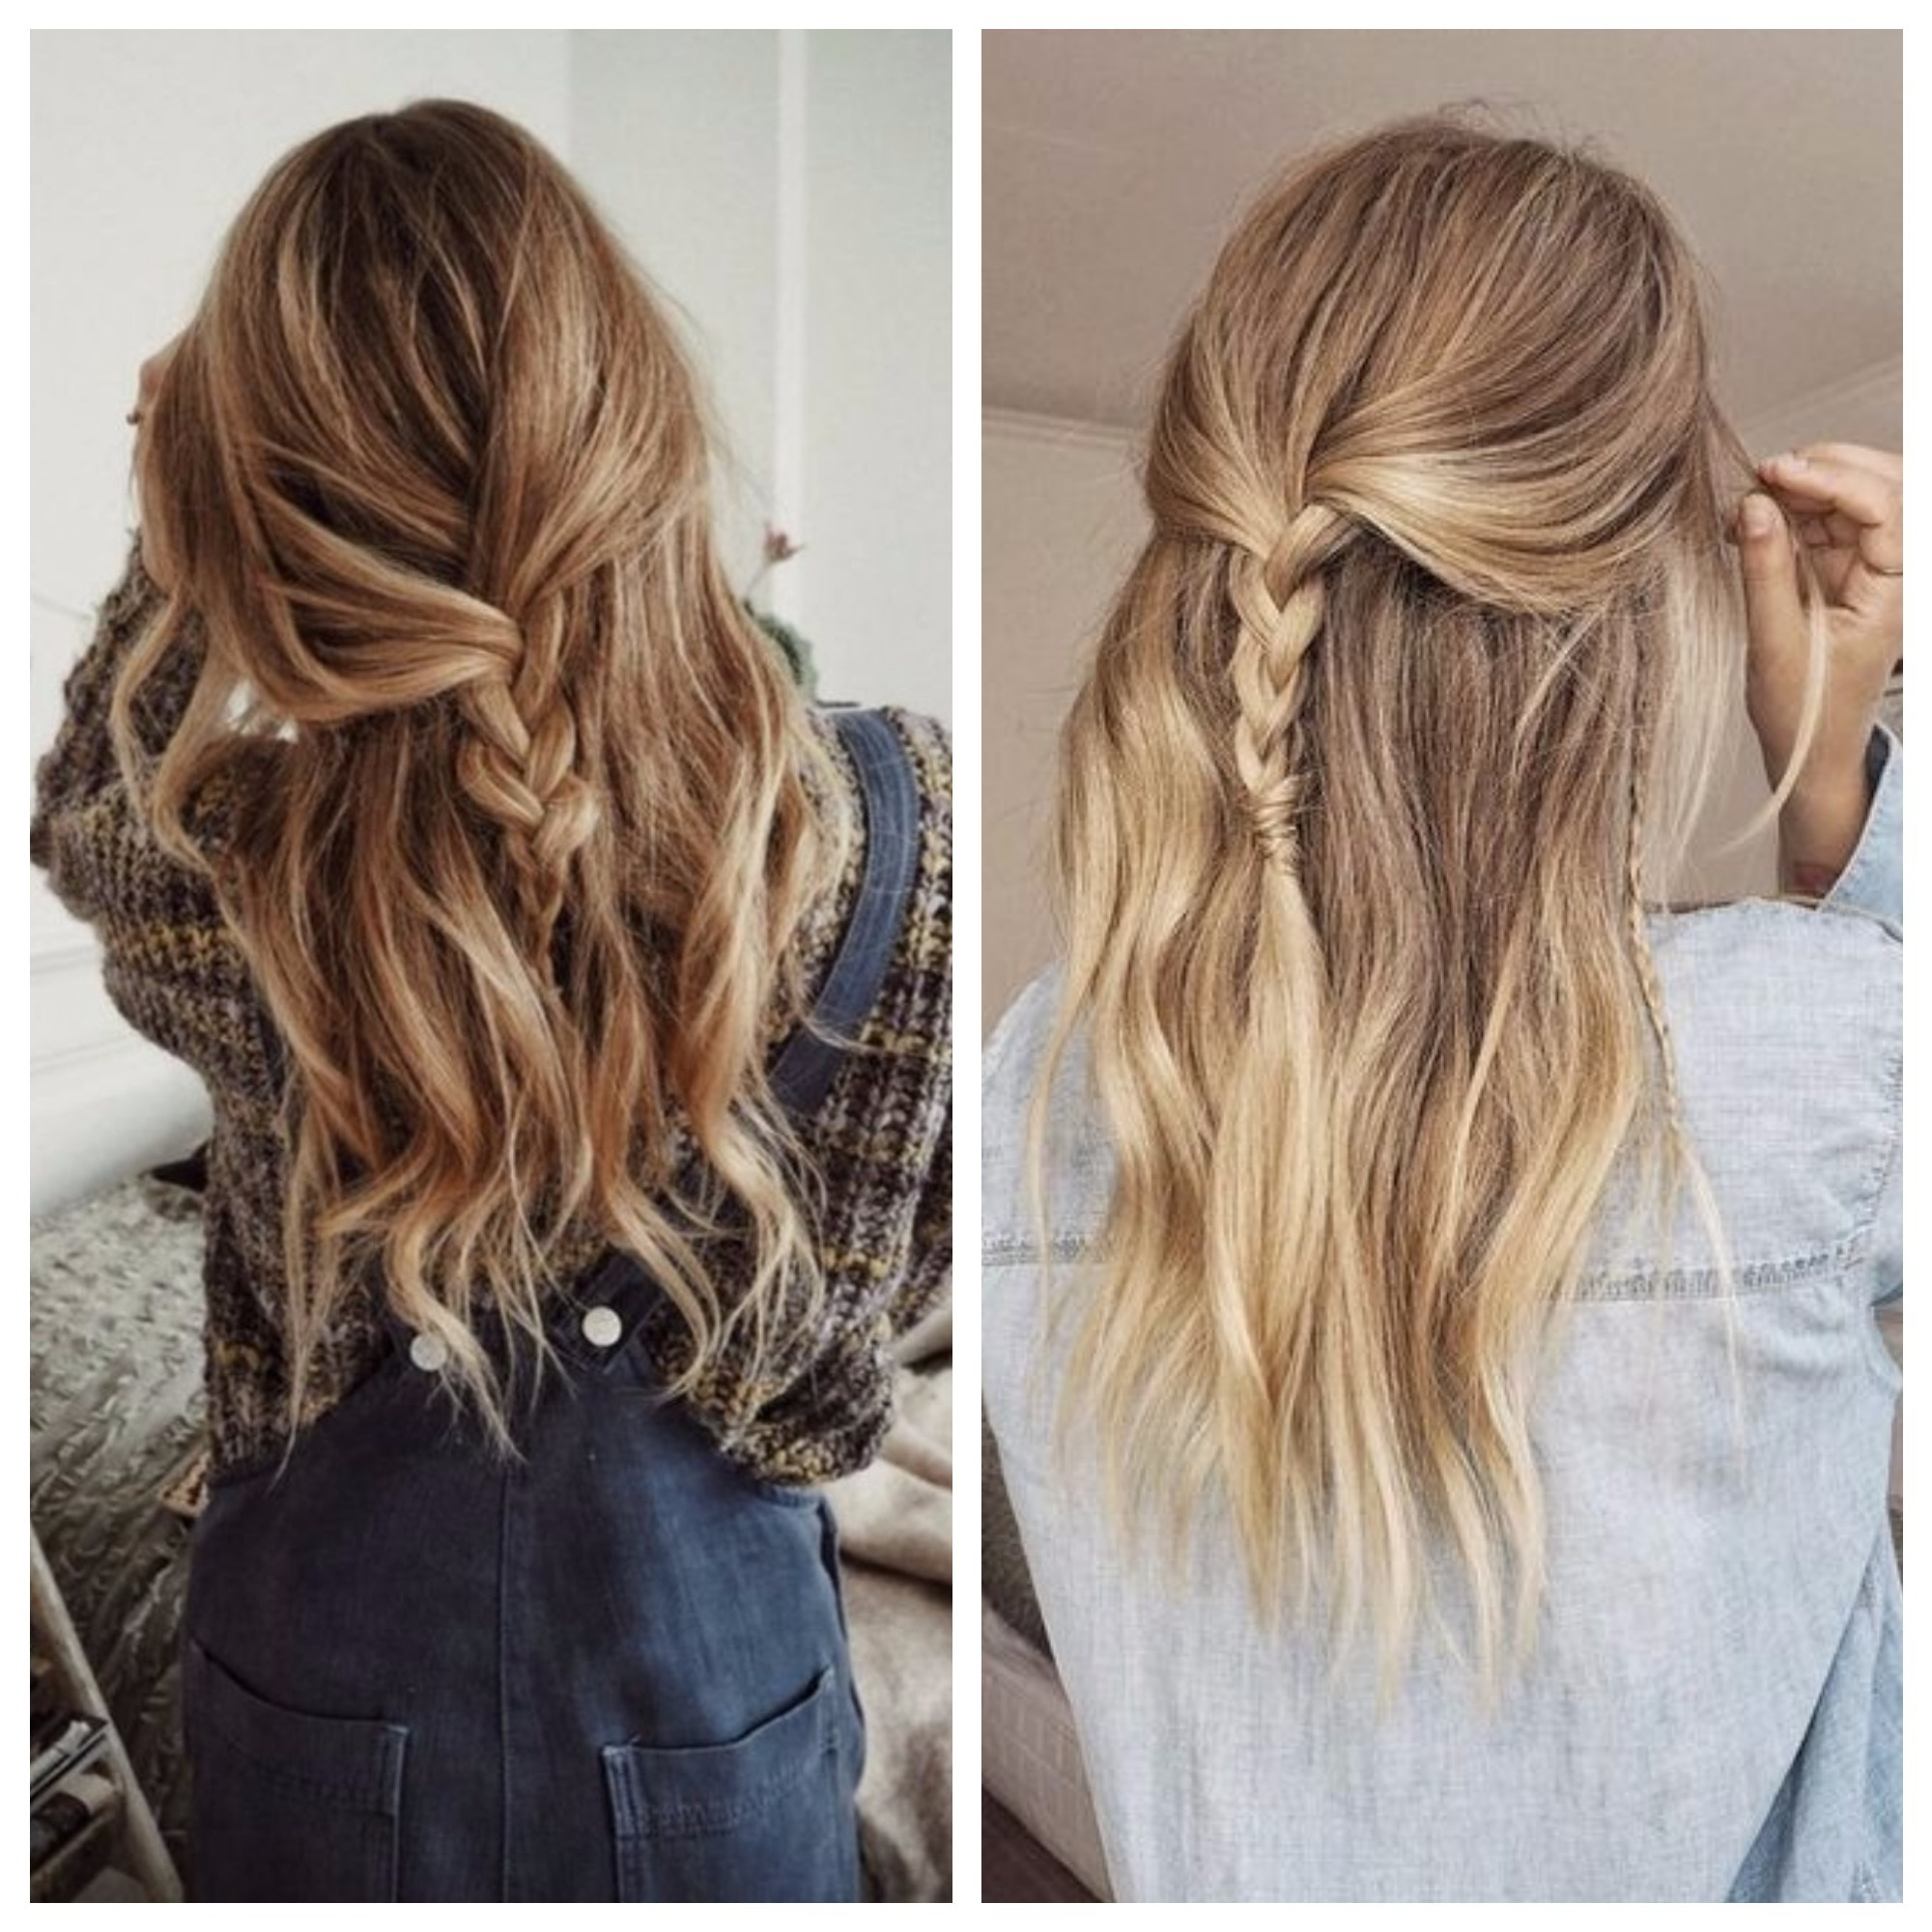 Loose Braid Hairstyle Ideas – Hair World Magazine With Regard To Most Current Loosely Braided Ponytail Hairstyles (Gallery 15 of 20)